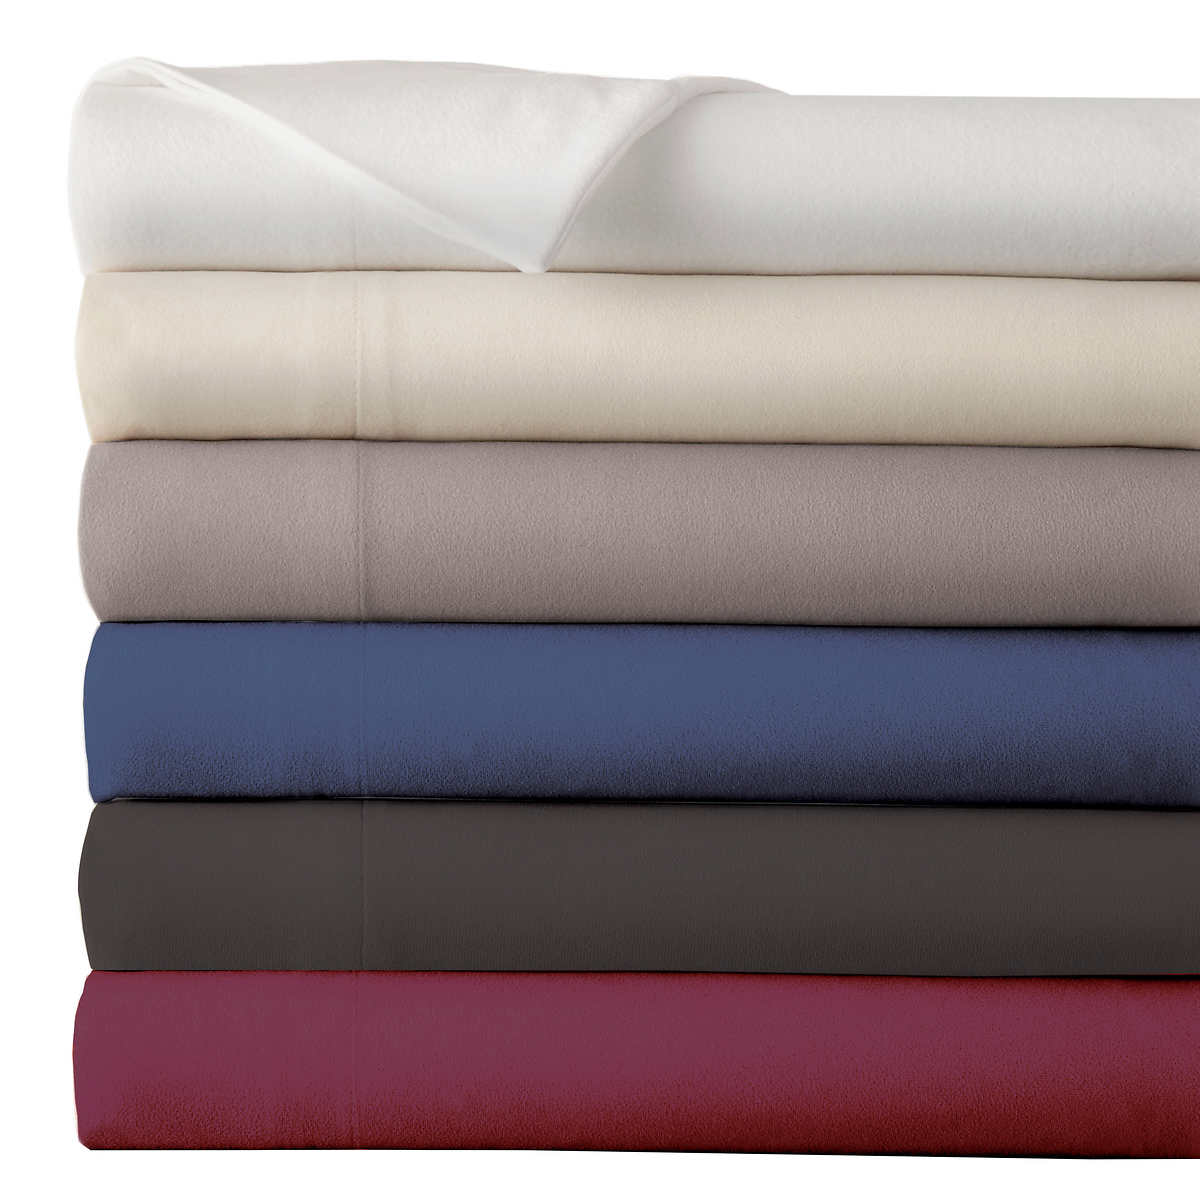 Micro Flannel Solid 4 Piece Sheet Set